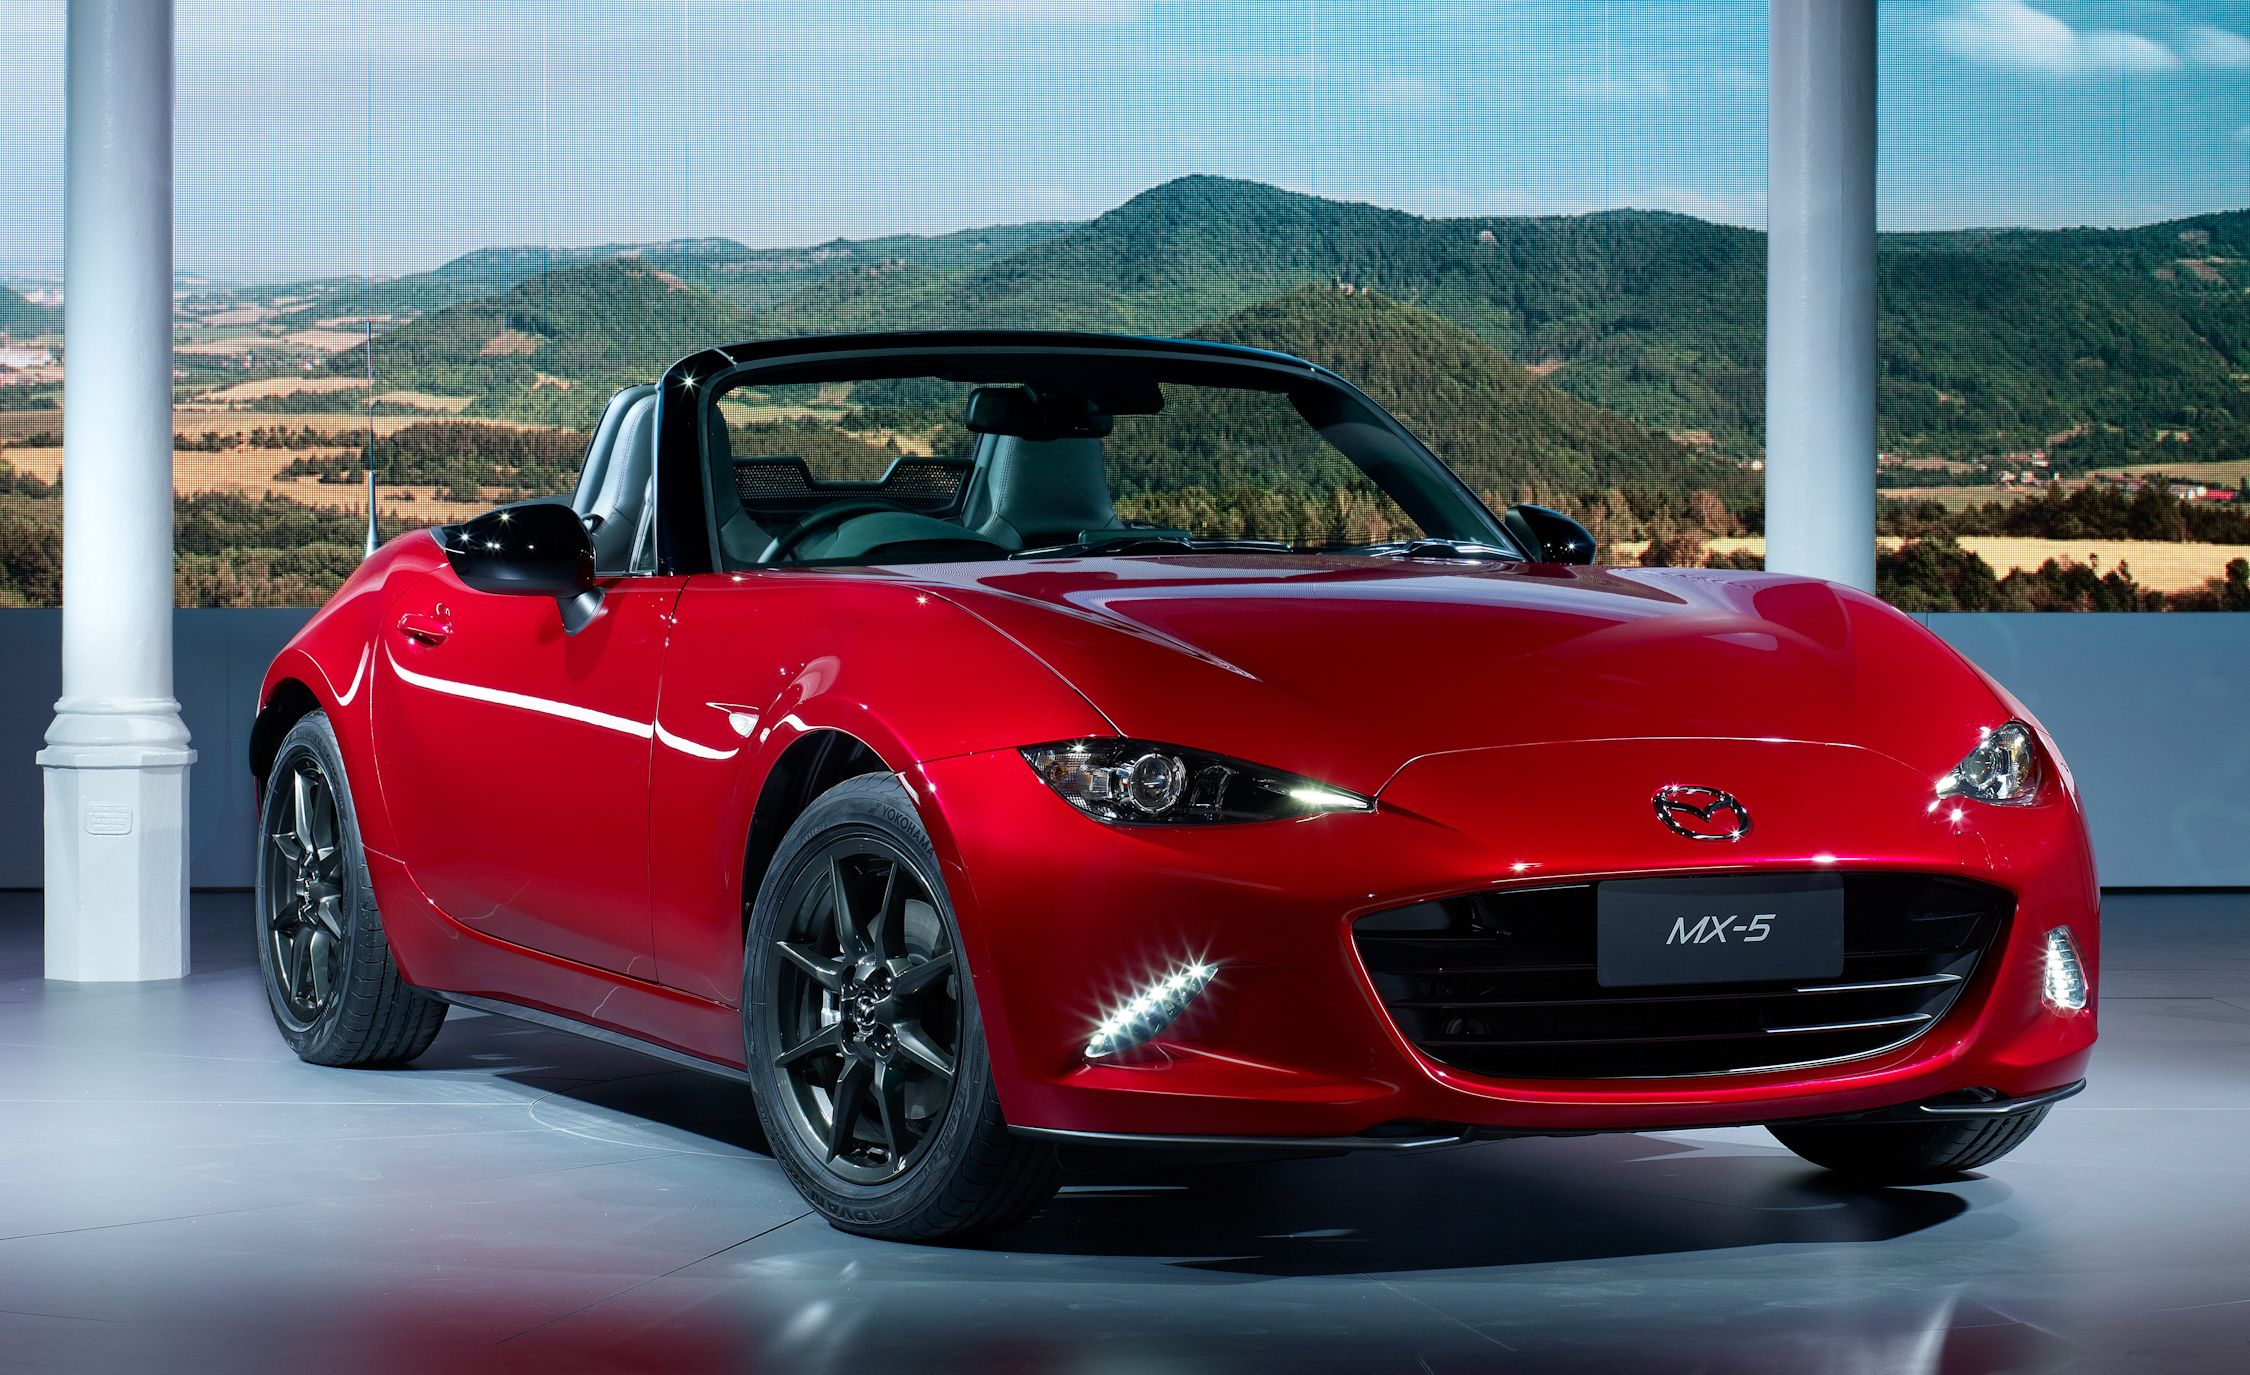 Pinned by http flanaganmotors com new 2015 mazda mx 5 concept cars that get our motor running pinterest beautiful mazda and bijoux